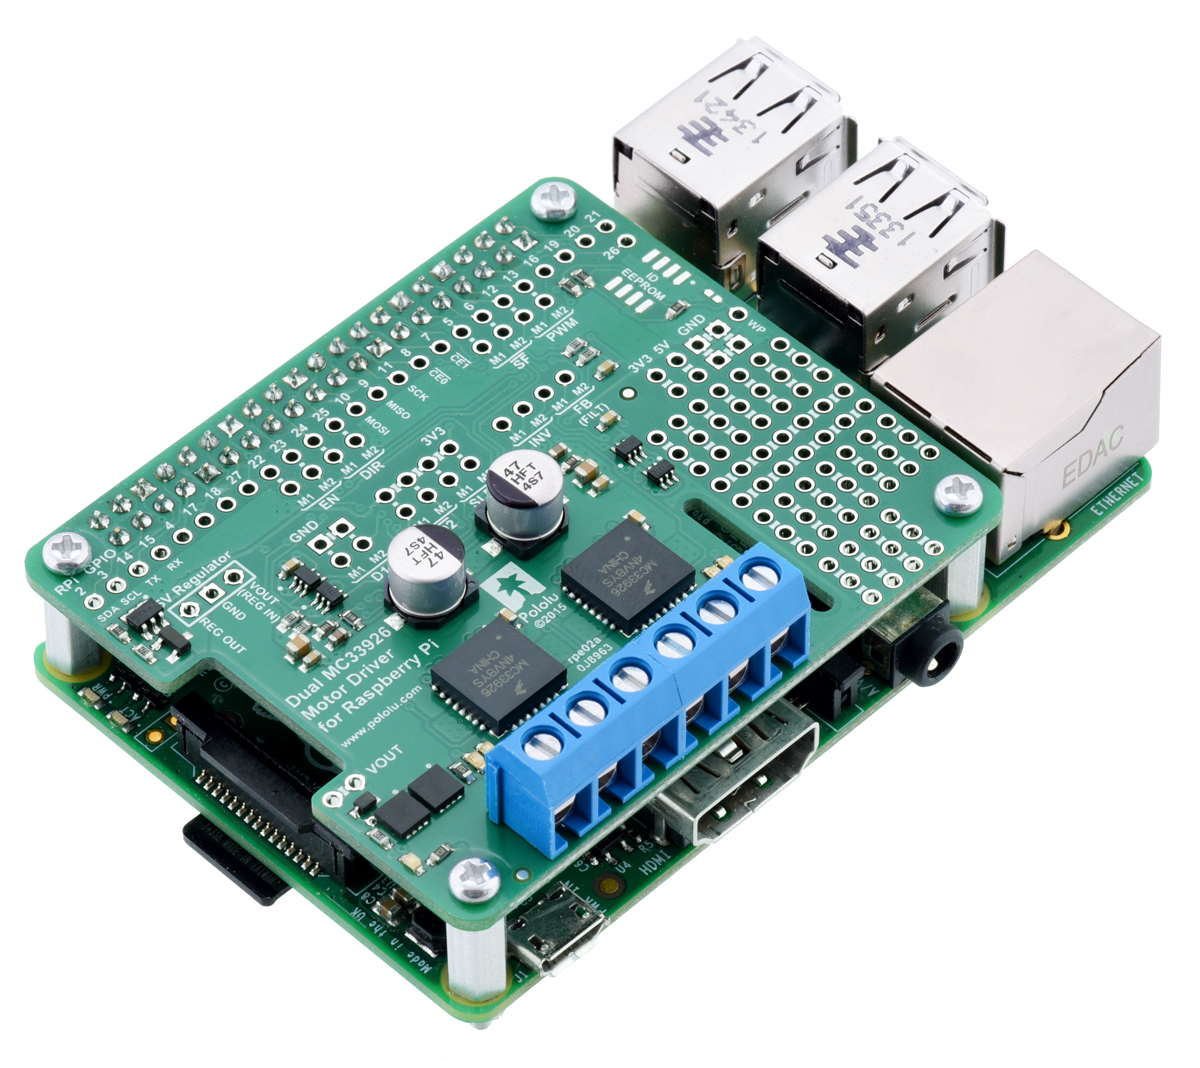 Pololu Dual Mc33926 Motor Driver For Raspberry Pi Partial Kit Pwmmotorcontrollerwithforwardandreversejpg However The Pin Mappings Can Be Customized If Defaults Are Not Convenient And Other Control Inputs Outputs Of Ics Accessible On